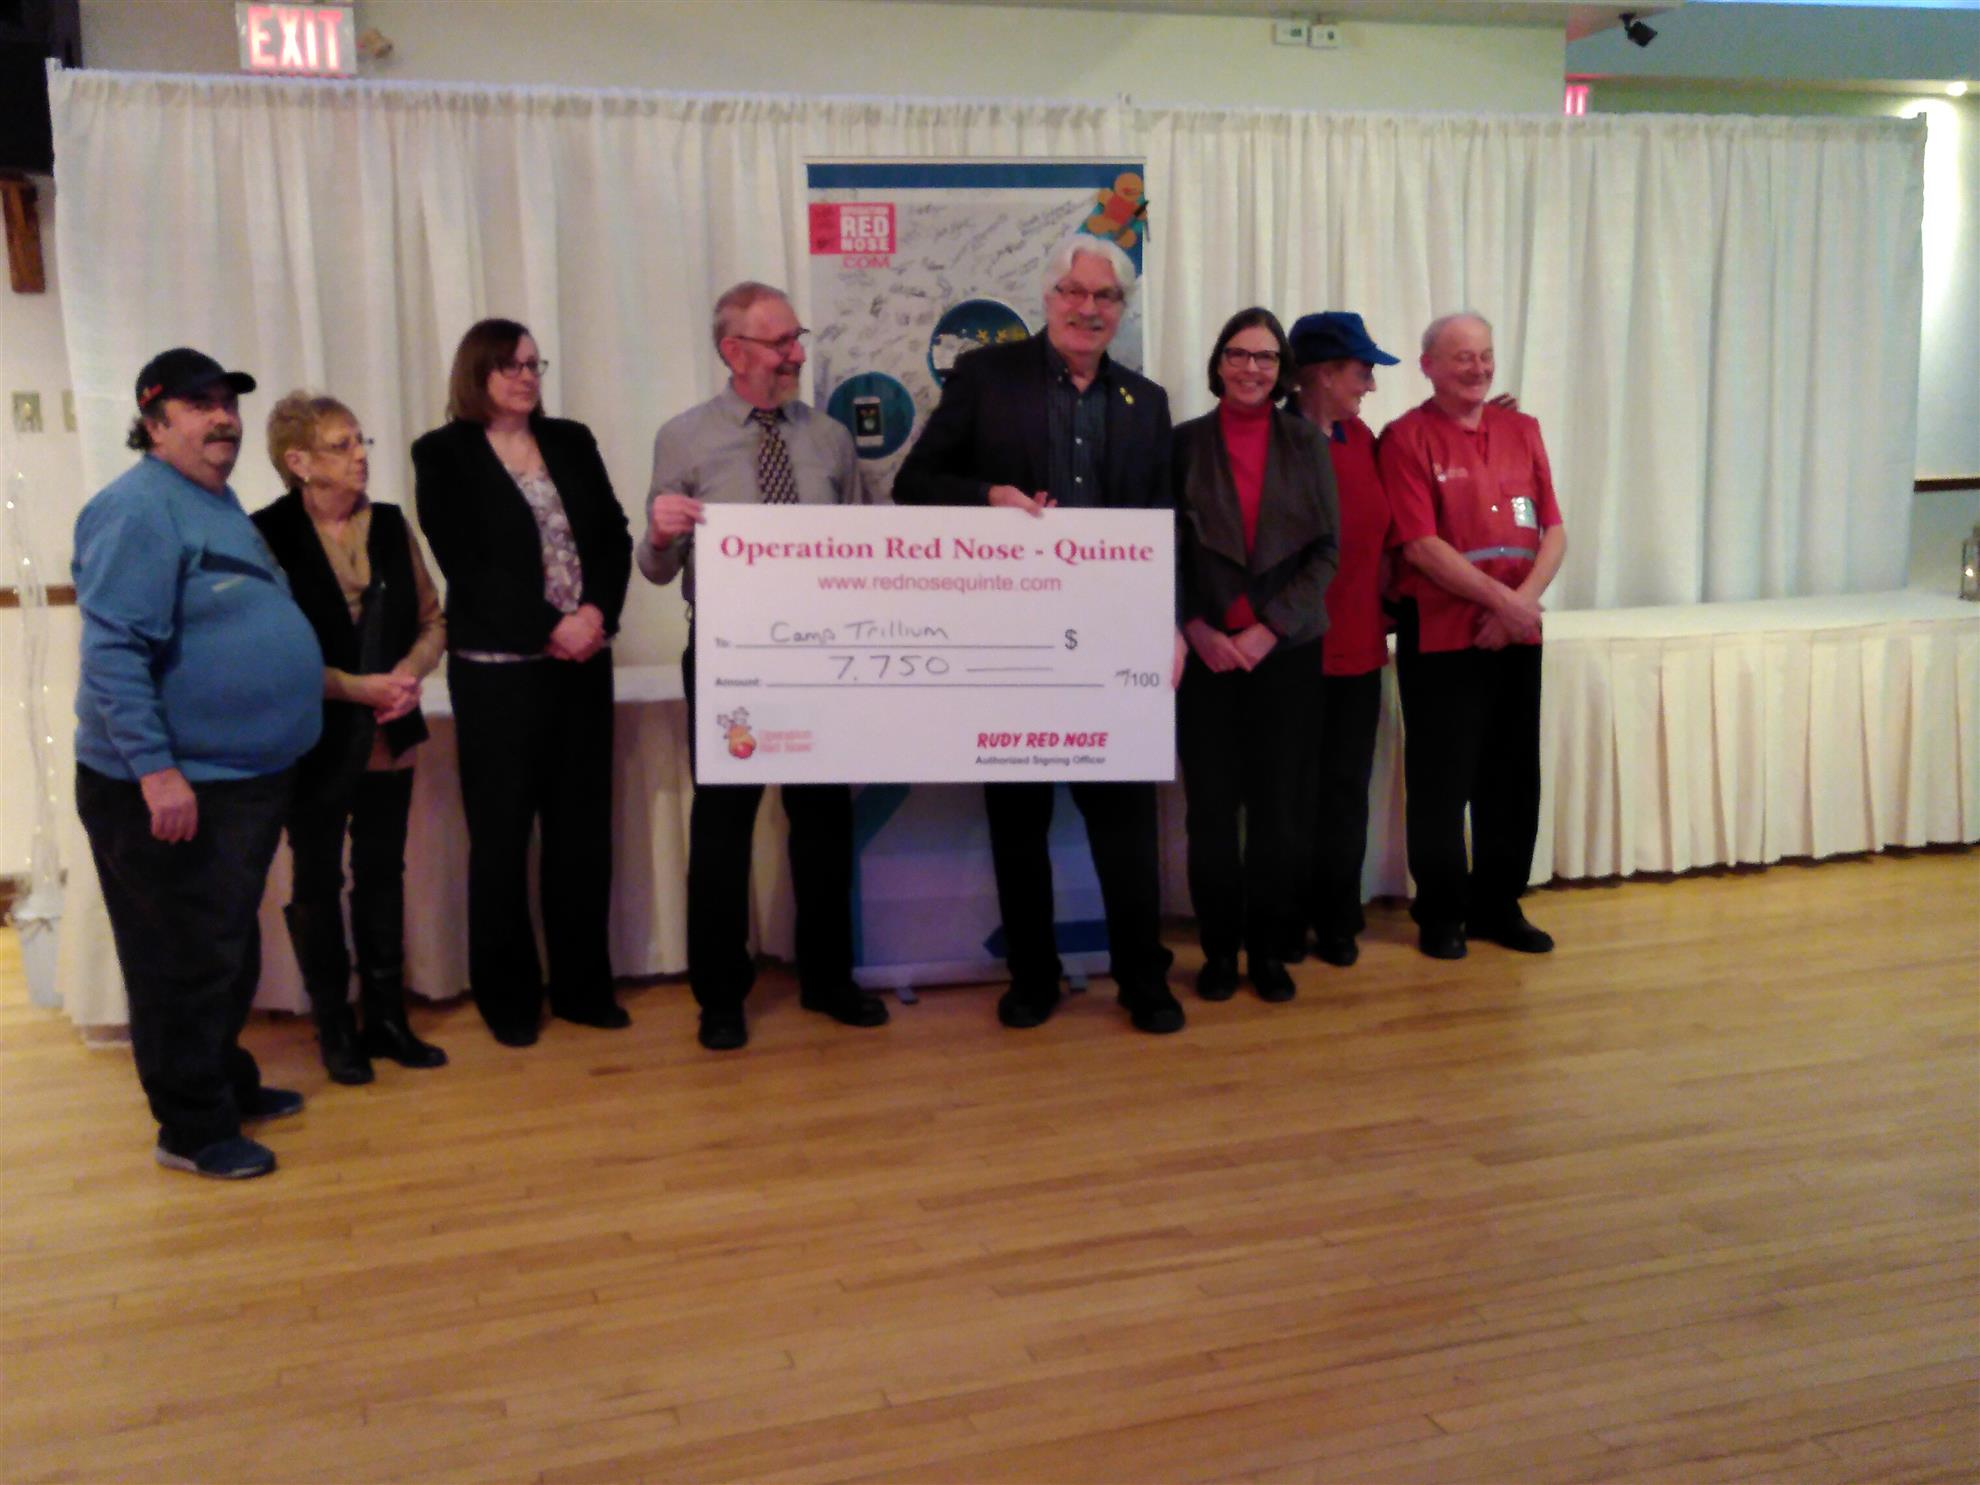 Members from Quinte Sunrise Rotary present a cheque to Camp Trillium